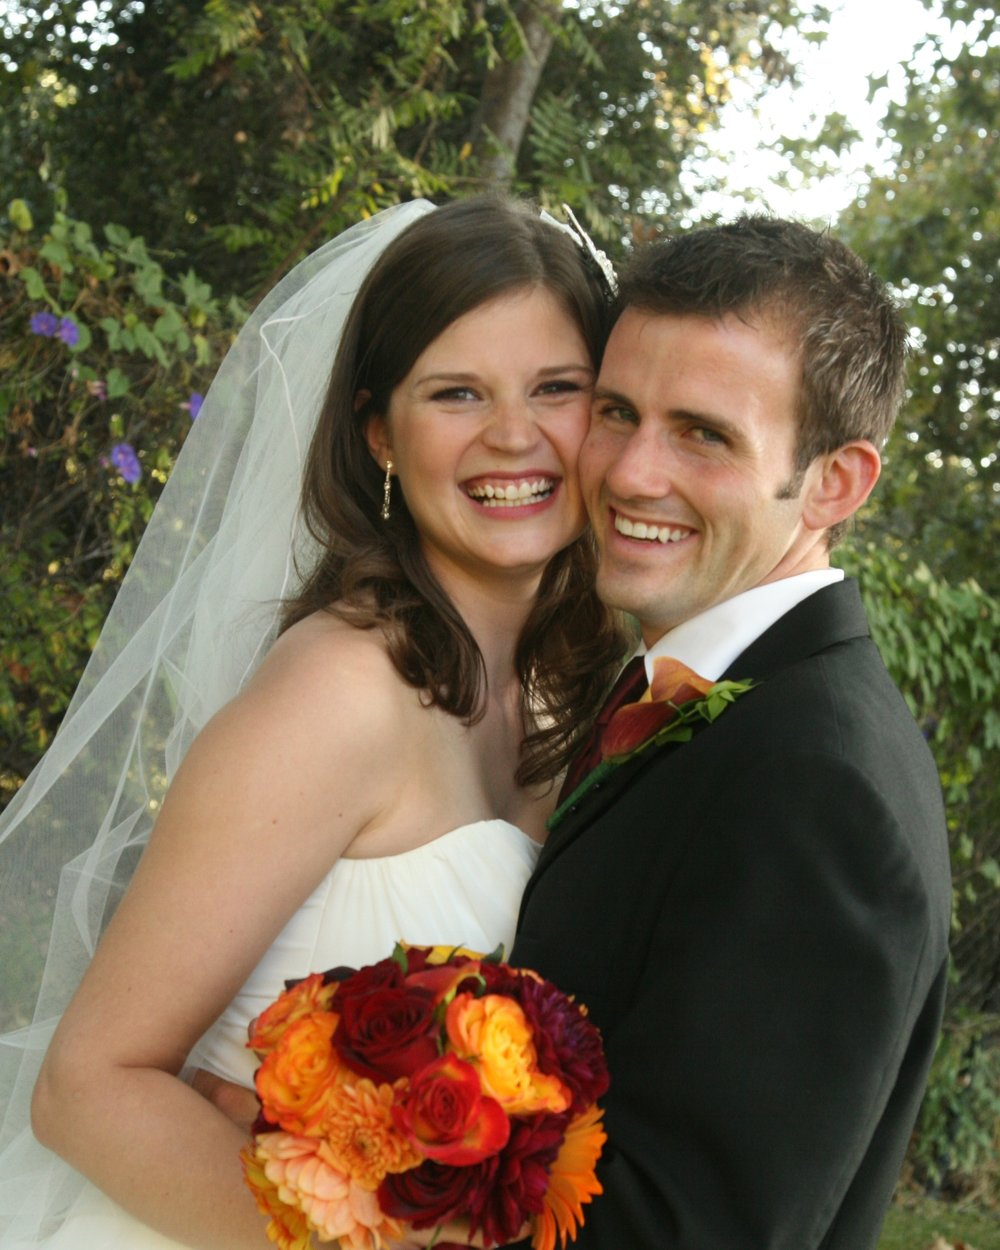 Katie and Adam Schuette Wedding photo 2008